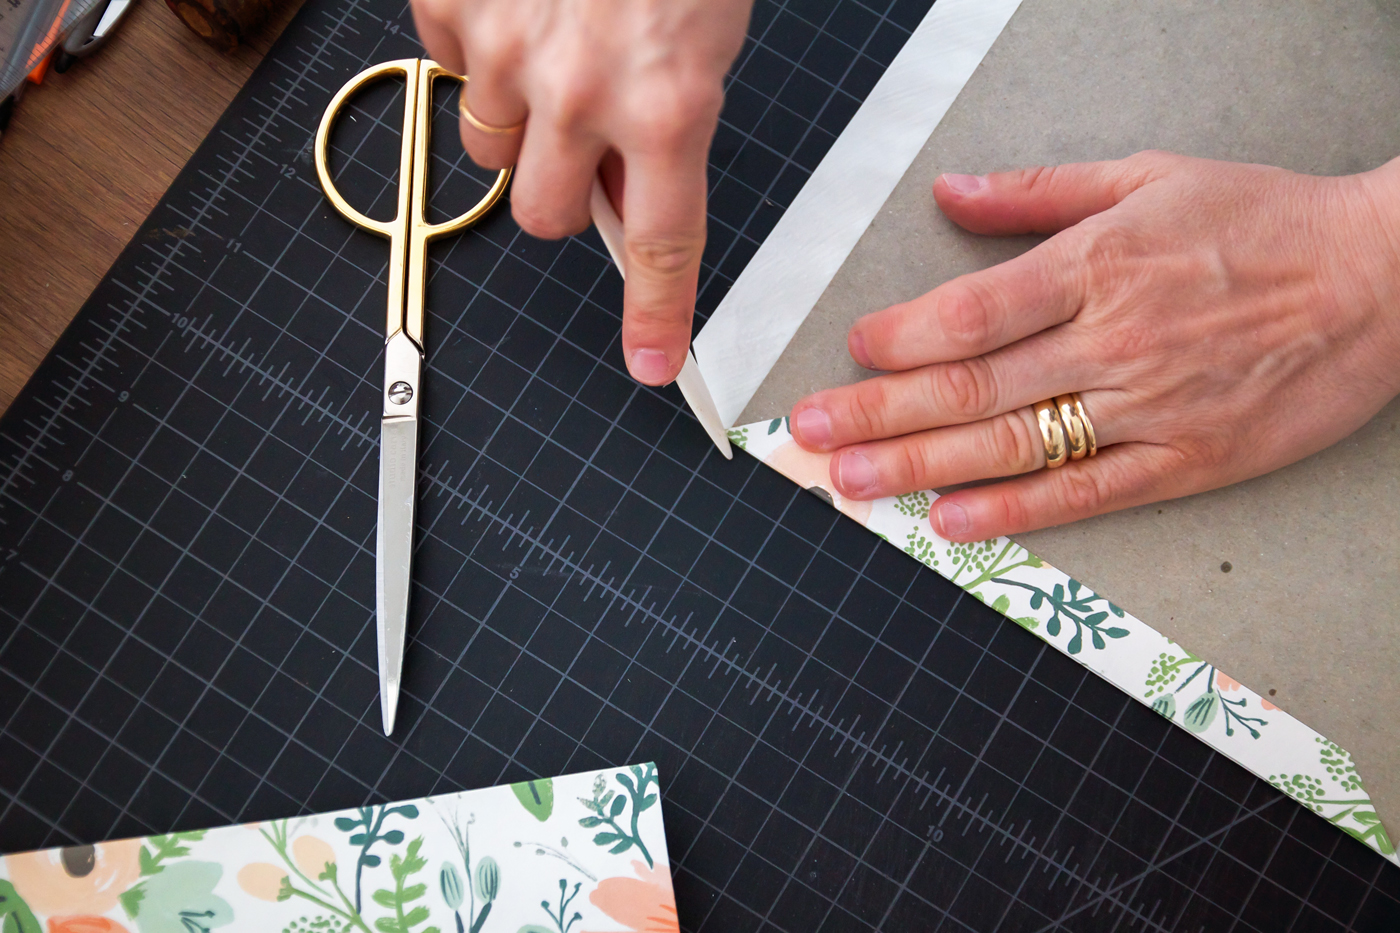 Step 4: Fold the first side over. Then using your bone folder, press the corner paper in towards the next fold so it lays against the cardboard edge. Then fold the second side down. Repeat as you go around.